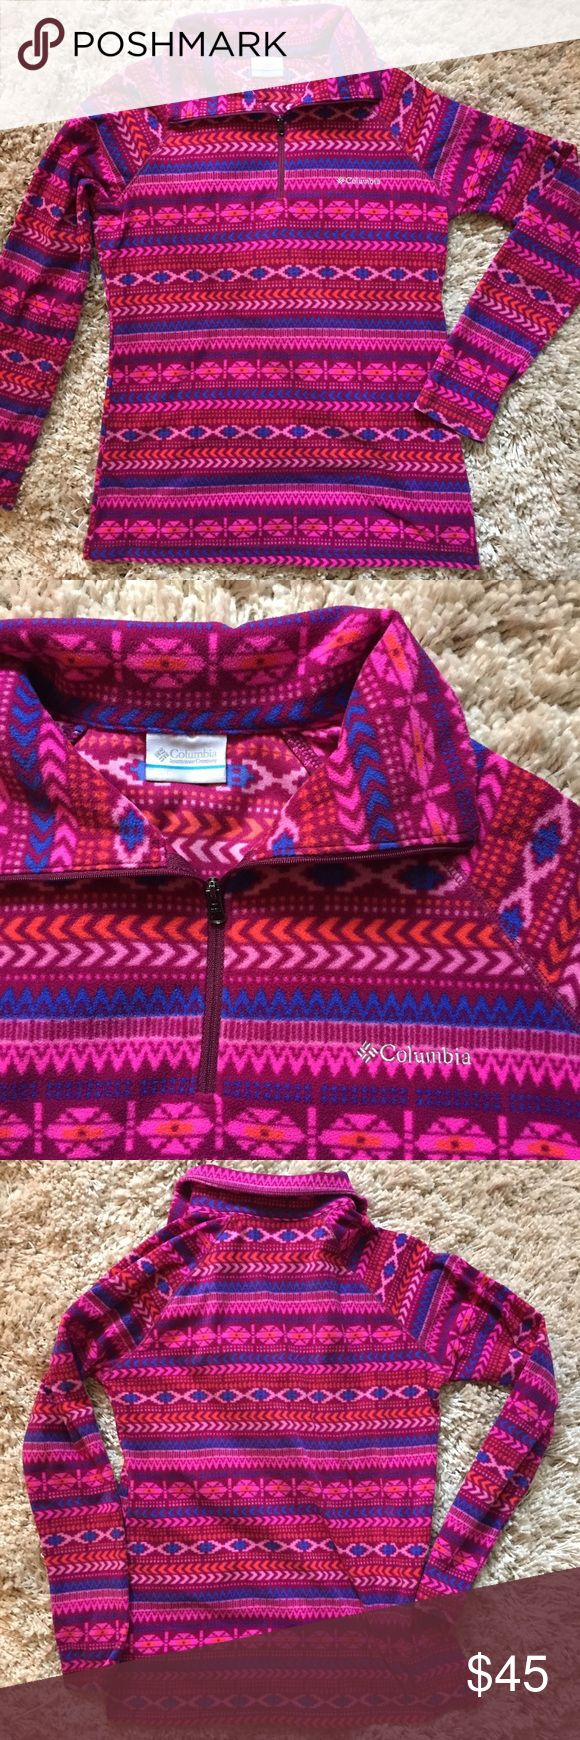 Like  Columbia Half Zip, Size MED + Aztec-like pattern  + 100% polyester  + Great for fall  + Don't forget to bundle!   ⭐️All items are steamed cleaned and shipped within 48 hours of your purchase.   ⭐️If you would like any additional photos or have any questions please let me know.  ⭐️Sorry, no trades. But will listen to ALL fair offers. Thanks for shopping! Columbia Sweaters